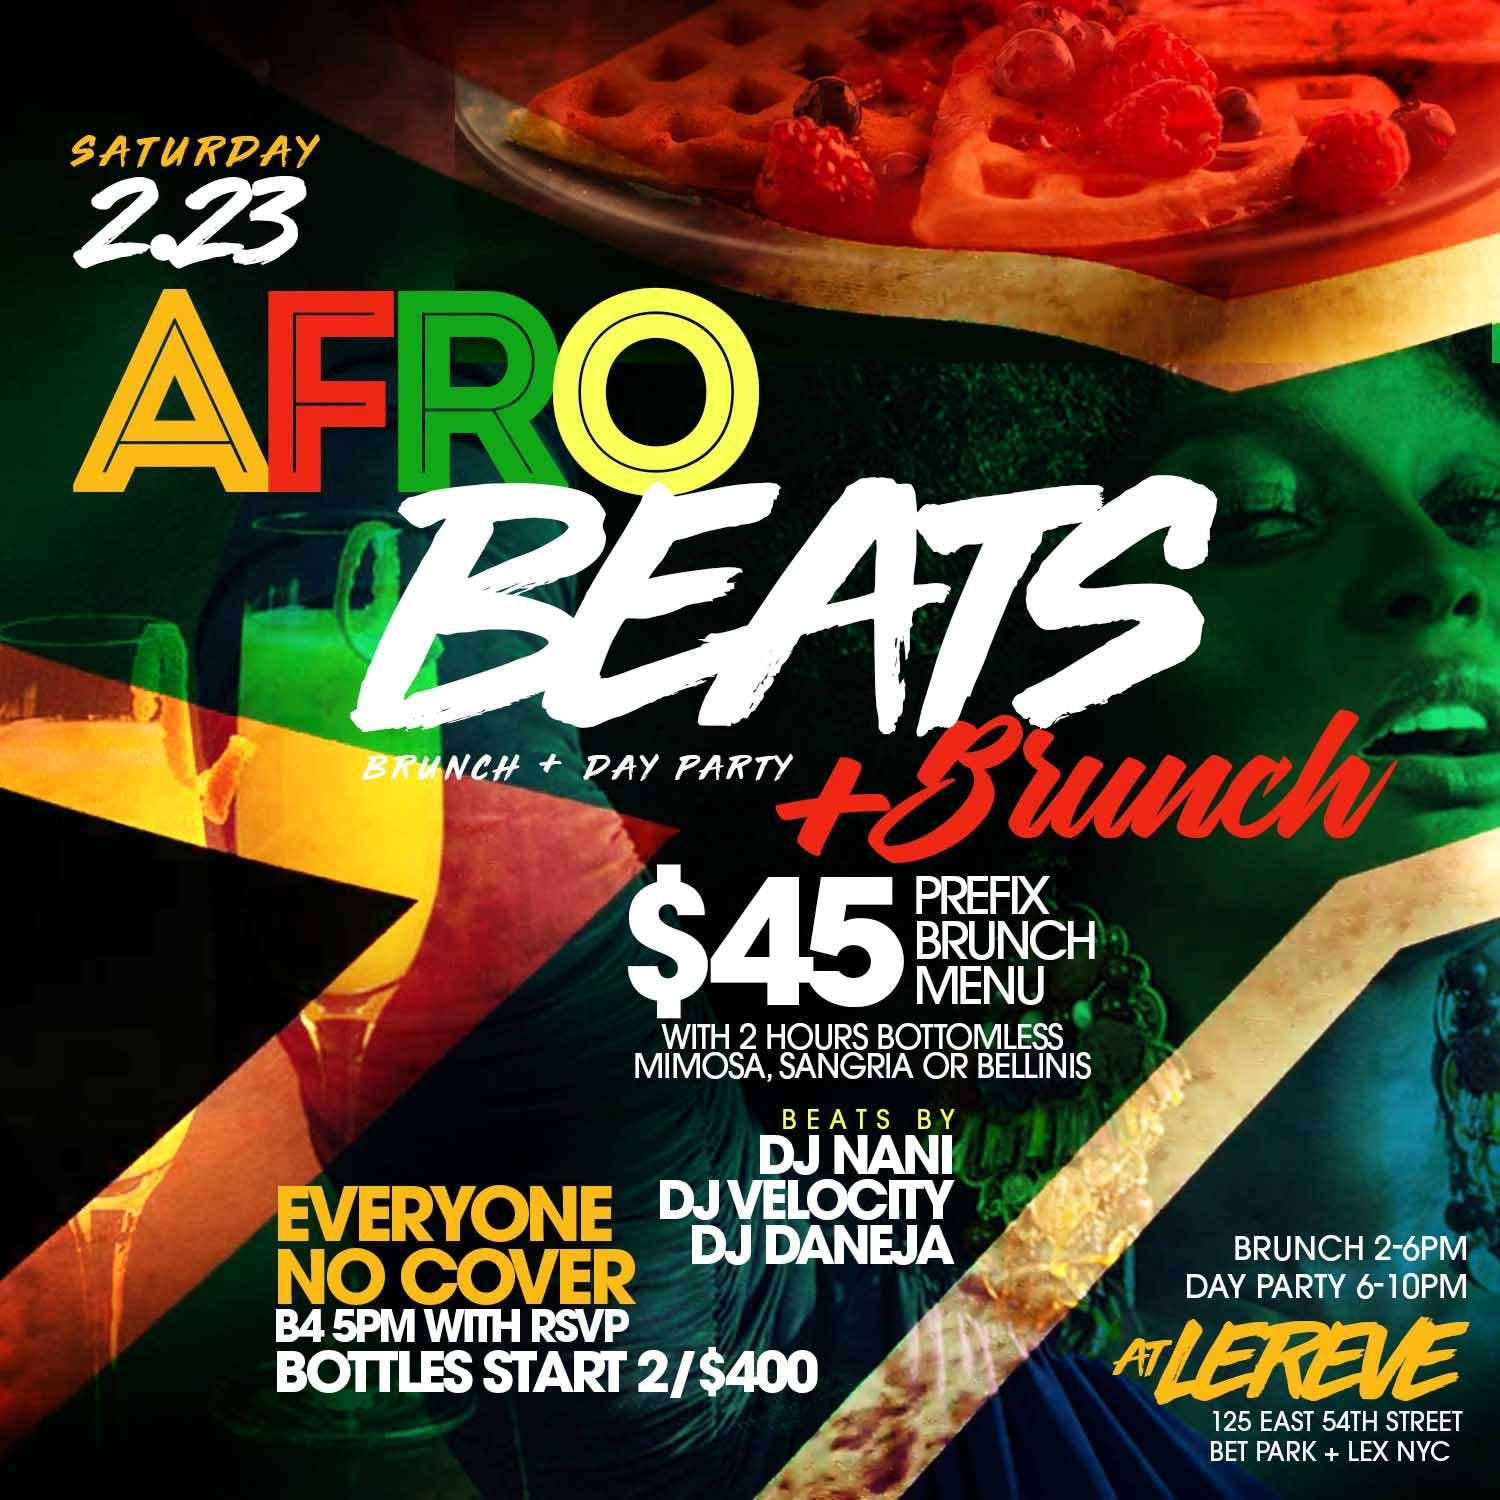 CEO FRESH PRESENTS:  AFROBEATS AND BRUNCH  (BRUNCH & DAY PARTY) AT LE REVE NYC